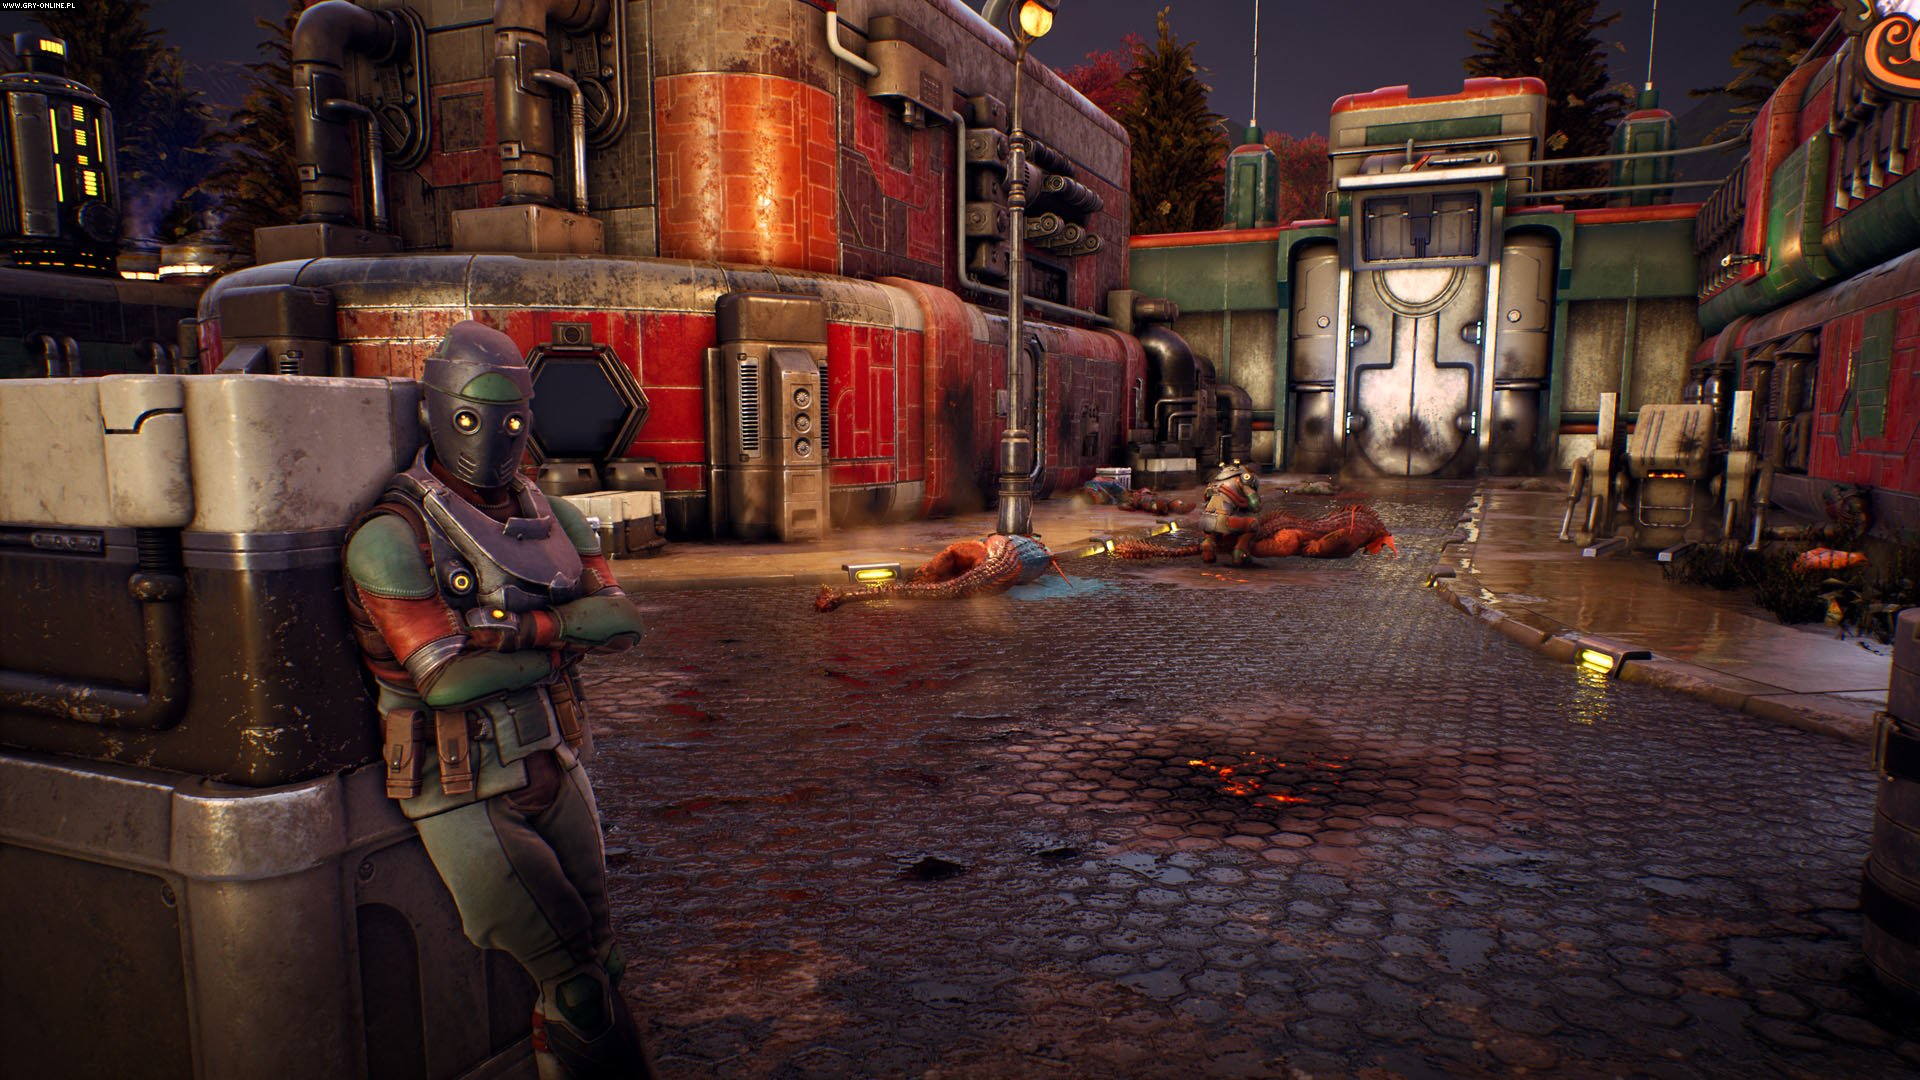 The Outer Worlds PC, PS4, XONE Games Image 2/21, Obsidian Entertainment, Private Division